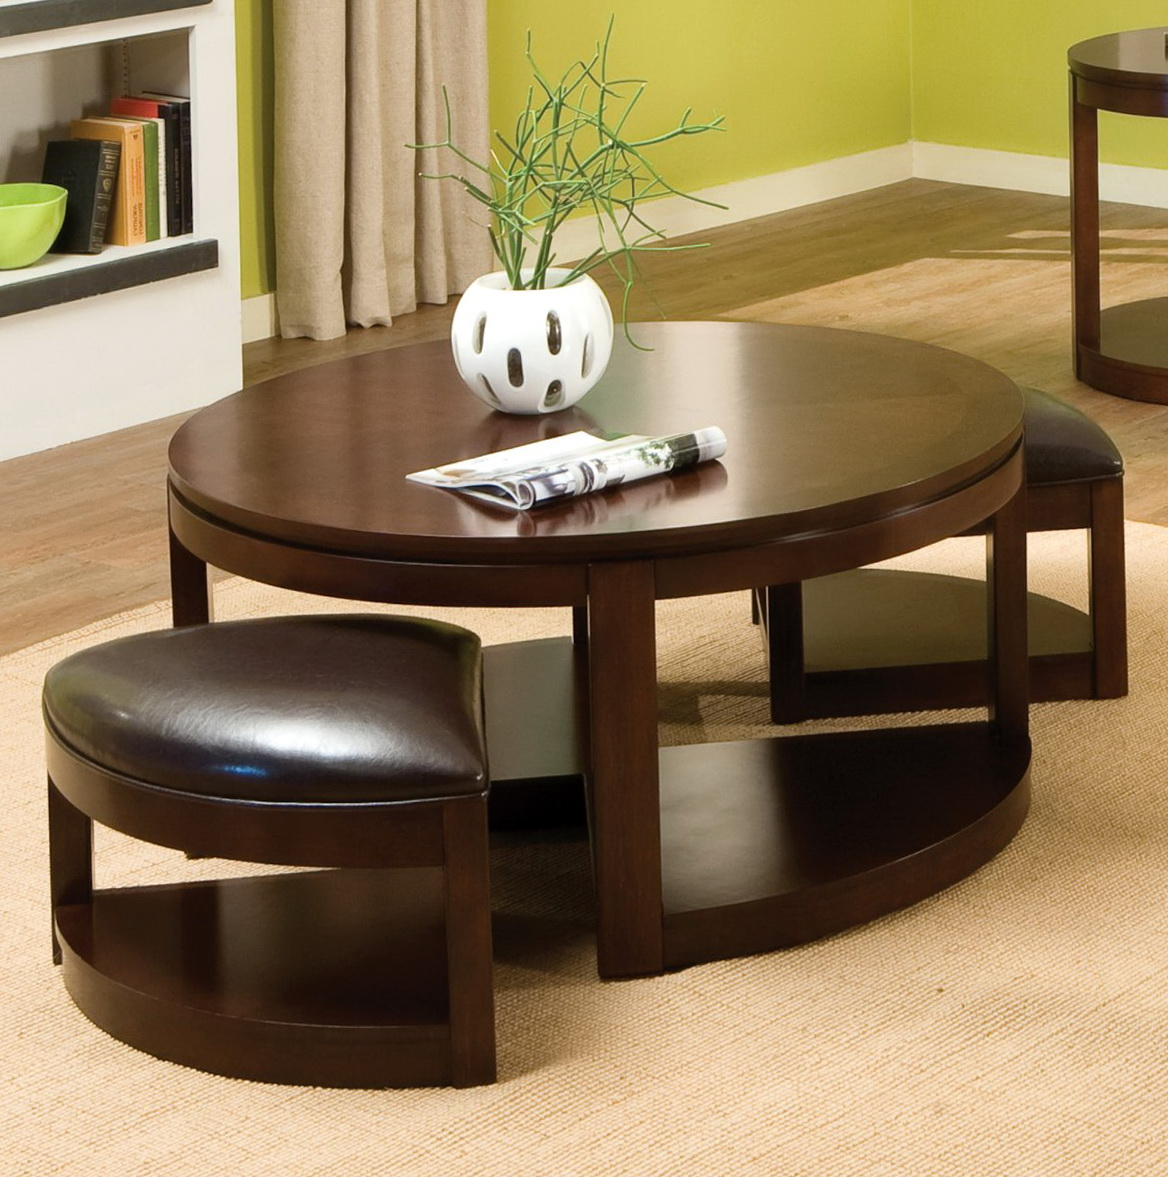 Ottoman Coffee Table Canada